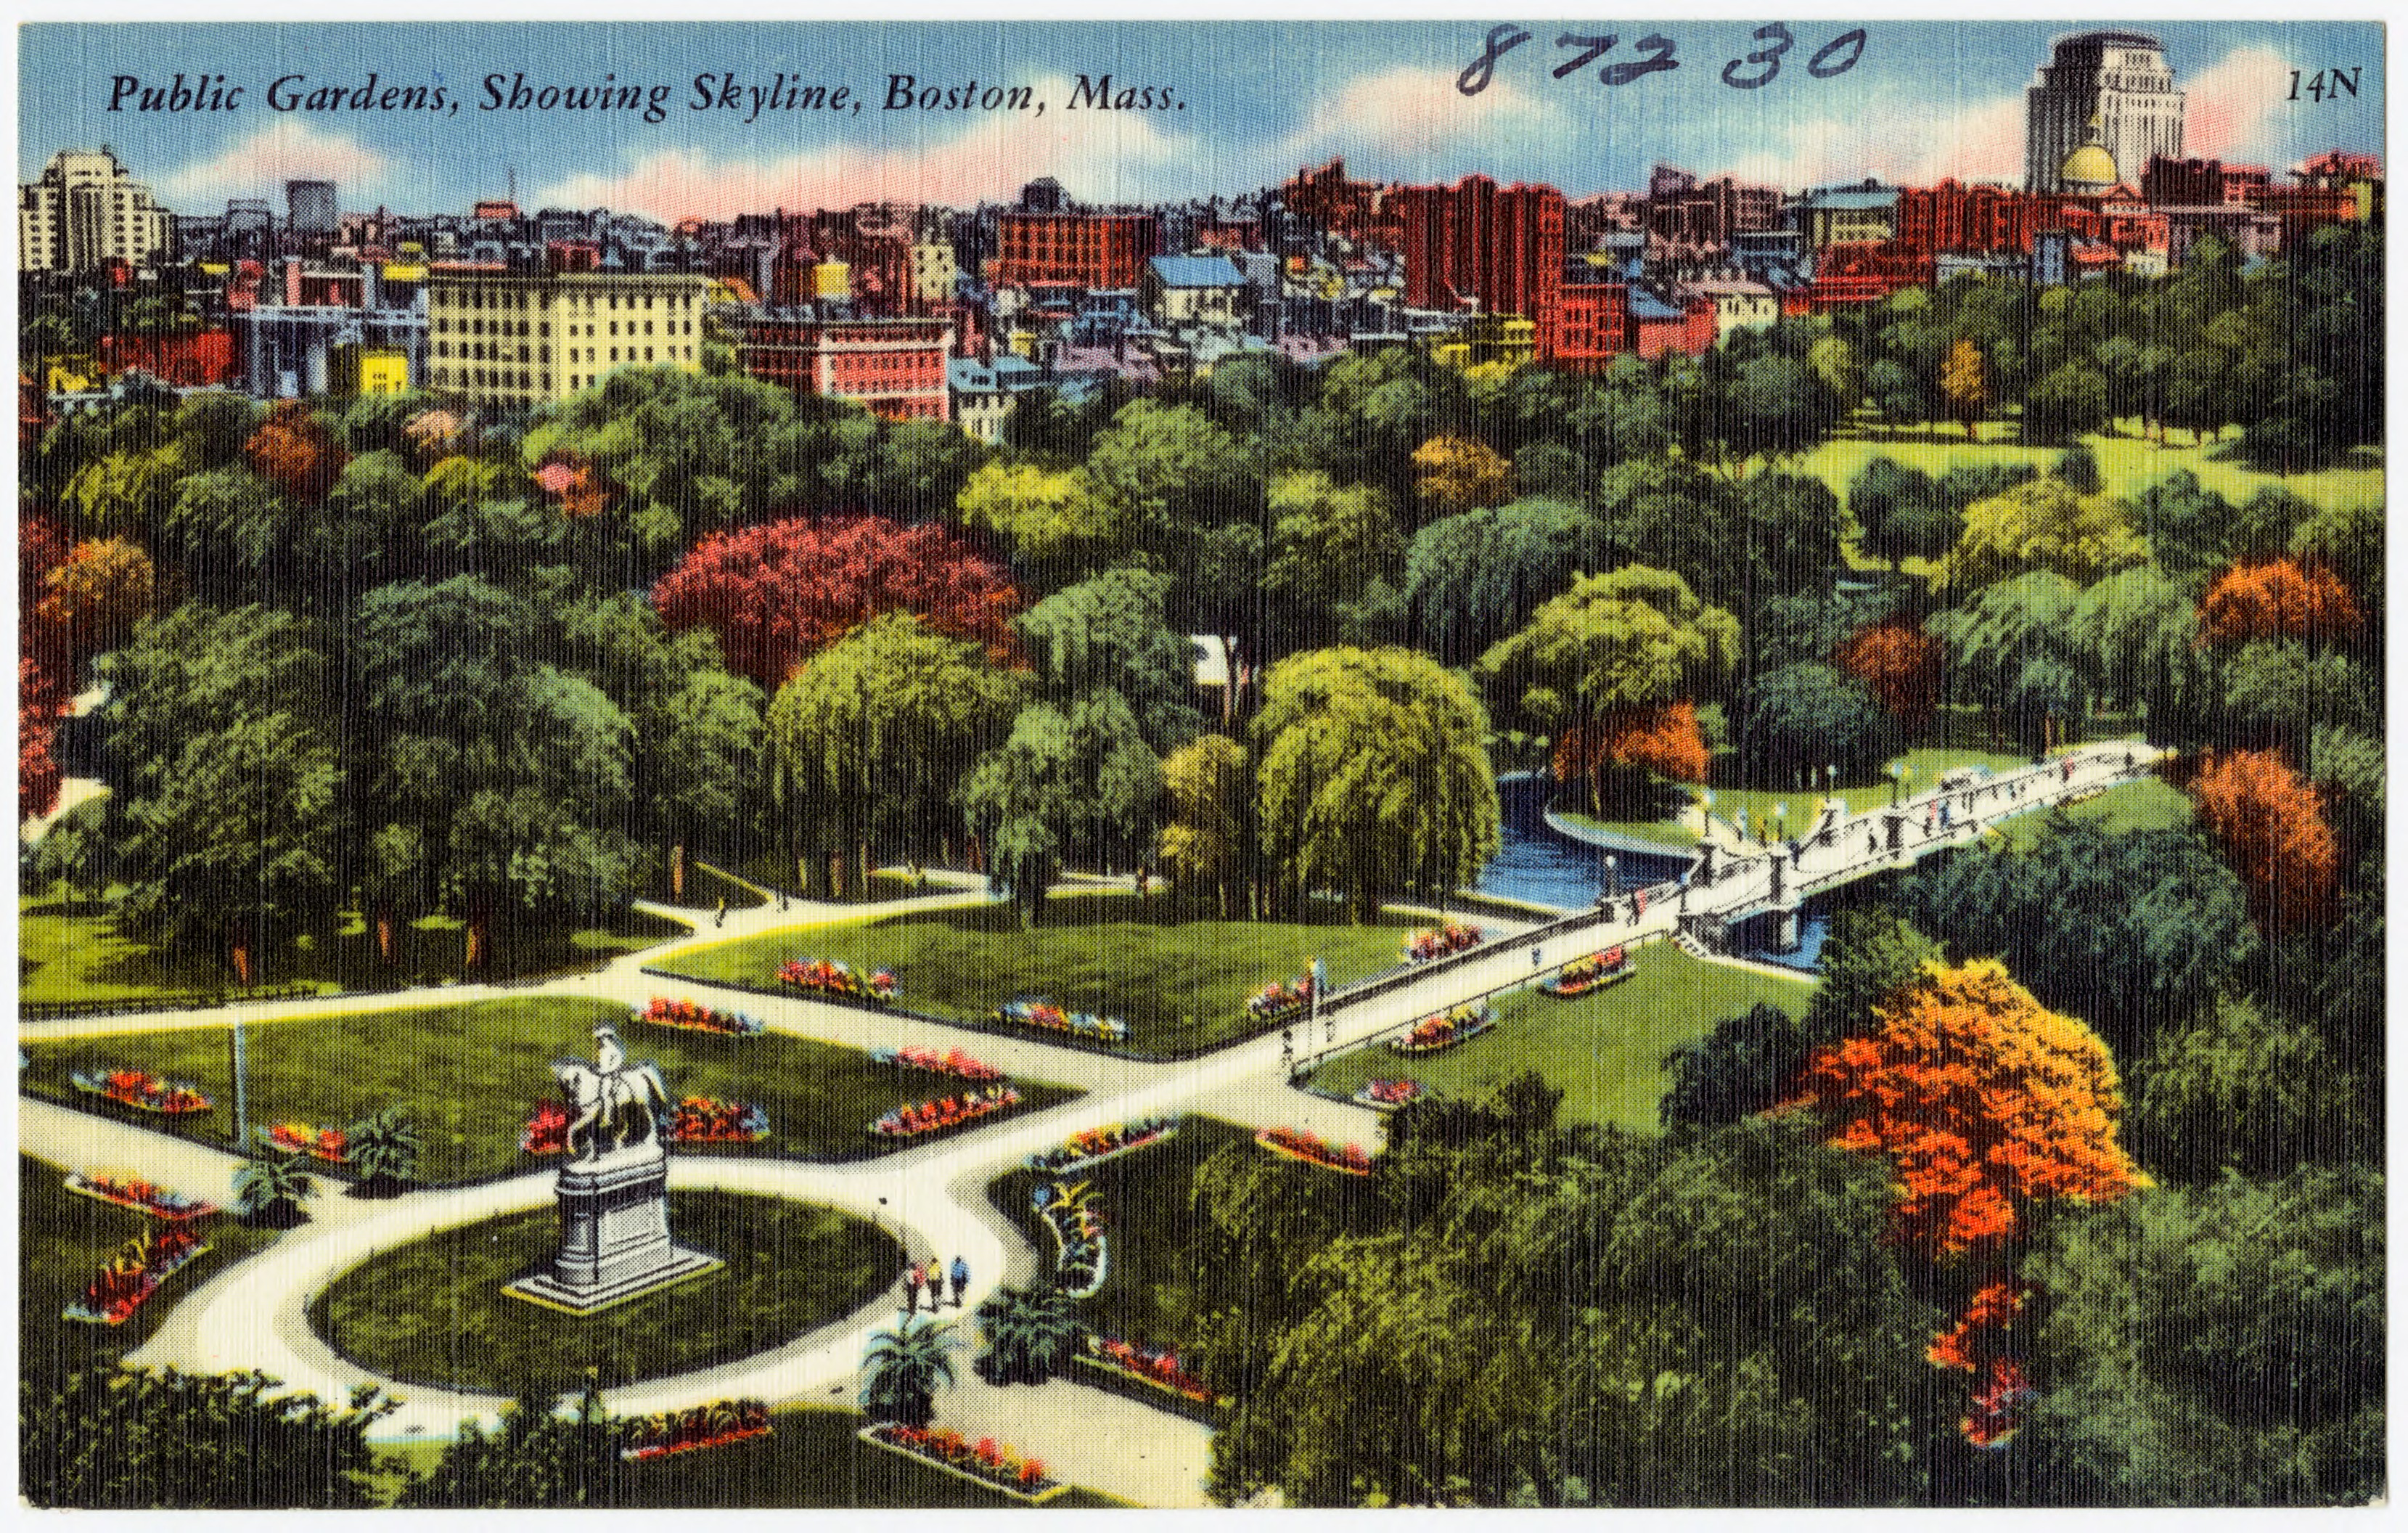 File:Public Gardens, showing skyline, Boston, Mass (87230).jpg ...